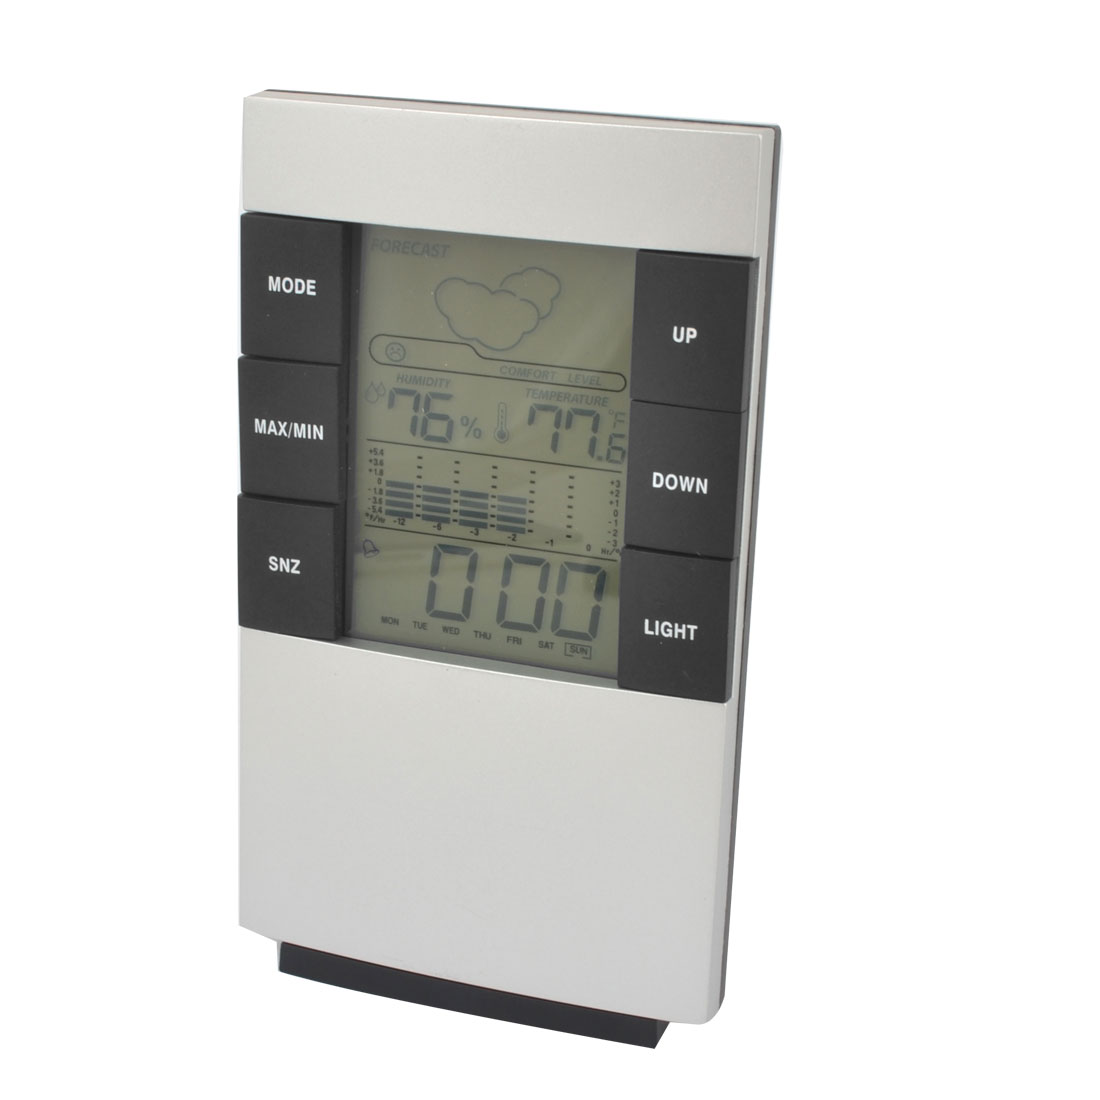 Multifunction Digital LCD Projection Clock Alarm Calendar Weather Forecast Station Humidity Silver Tone Black